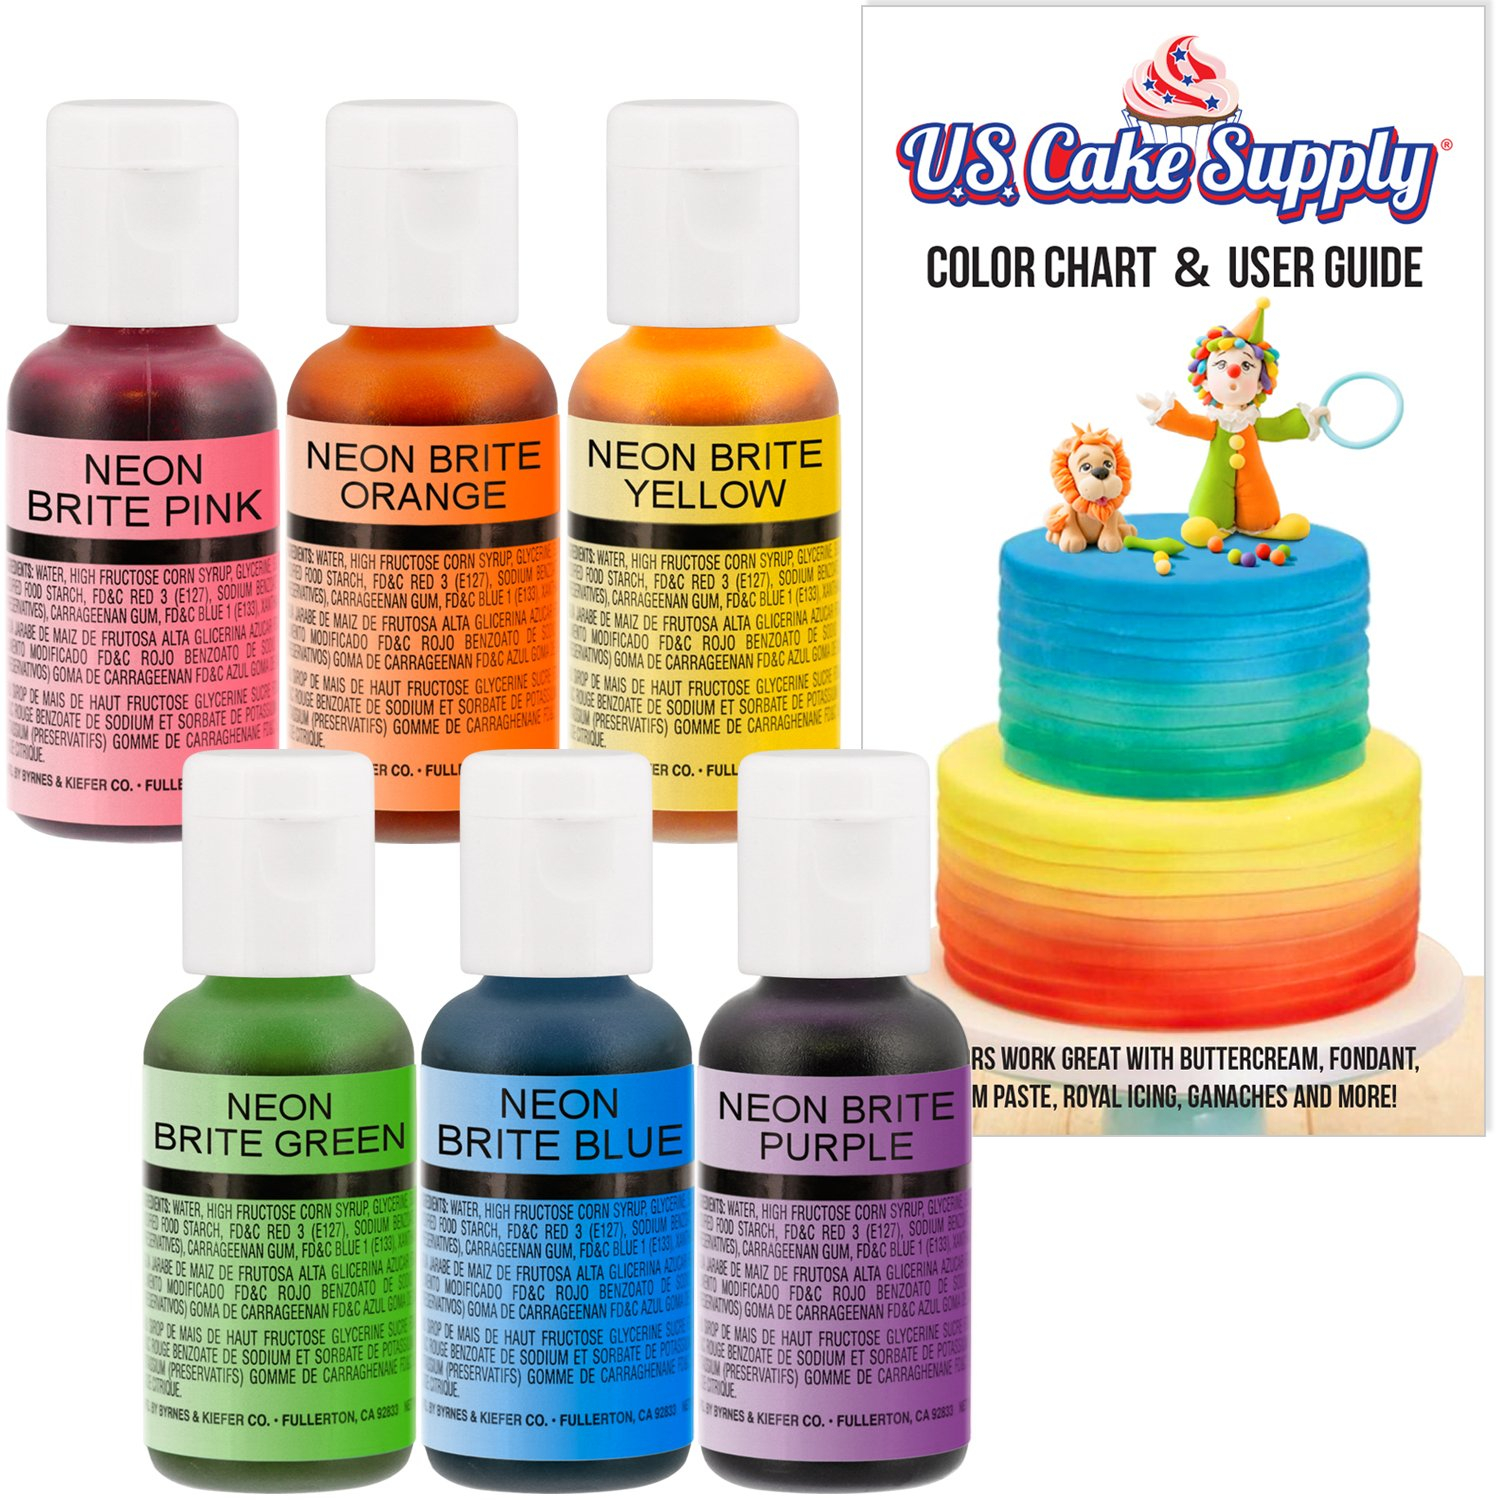 U.S. Cake Supply by Chefmaster Airbrush Cake Neon Color Set - The 6 Most Popular Neon Colors in 0.7 fl. oz. (20ml) Bottles - Safely Made in the USA product